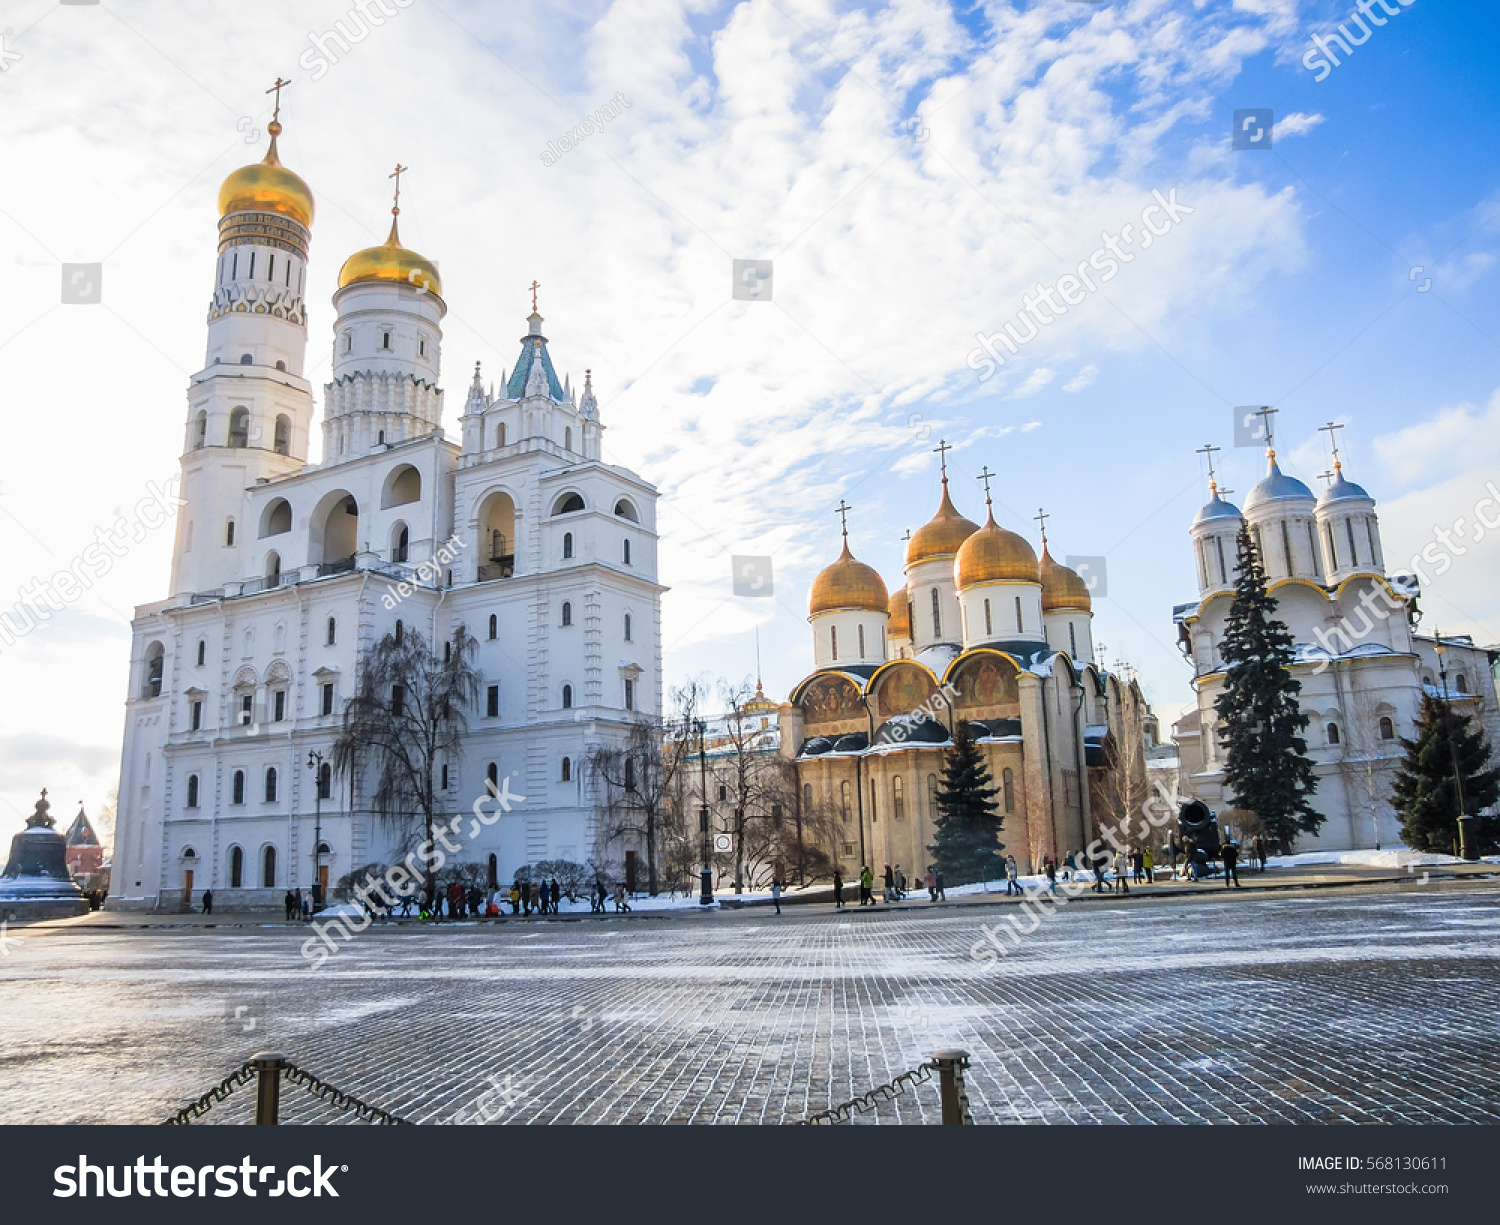 The Moscow Kremlin architectural ensemble: description, history and interesting facts 3